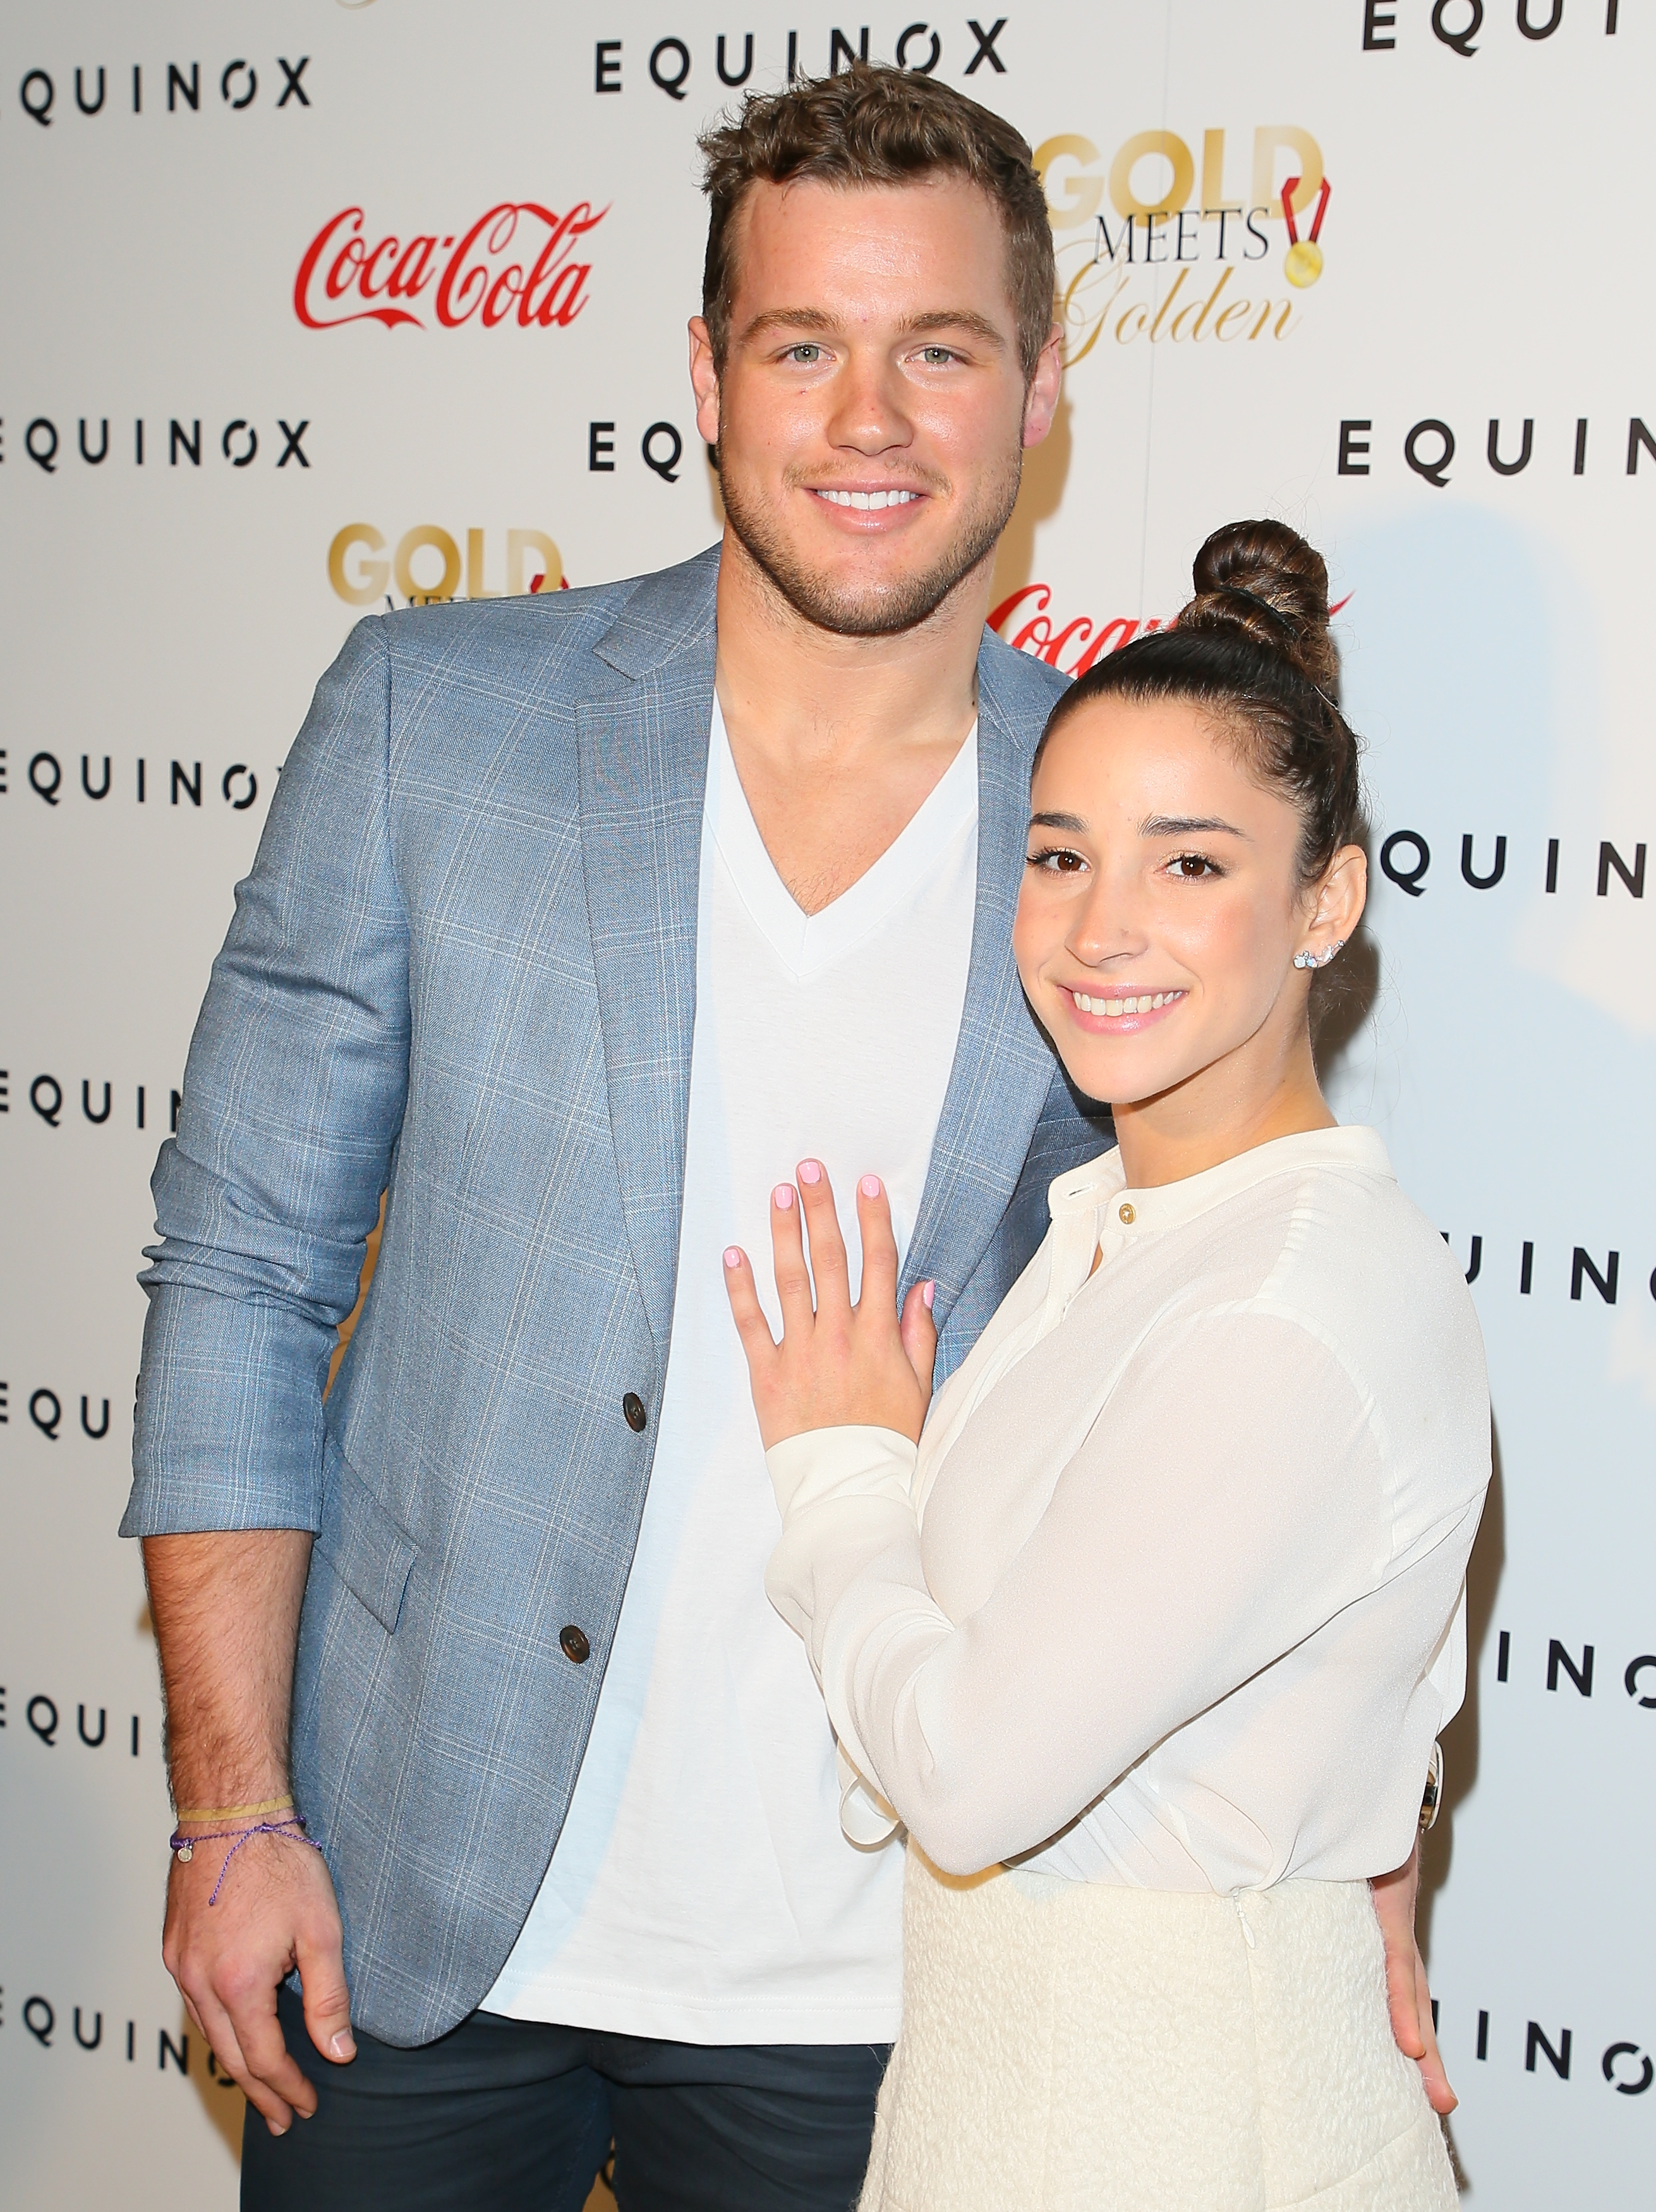 Photos Of Colton Underwood And Aly Raisman Going On Dates